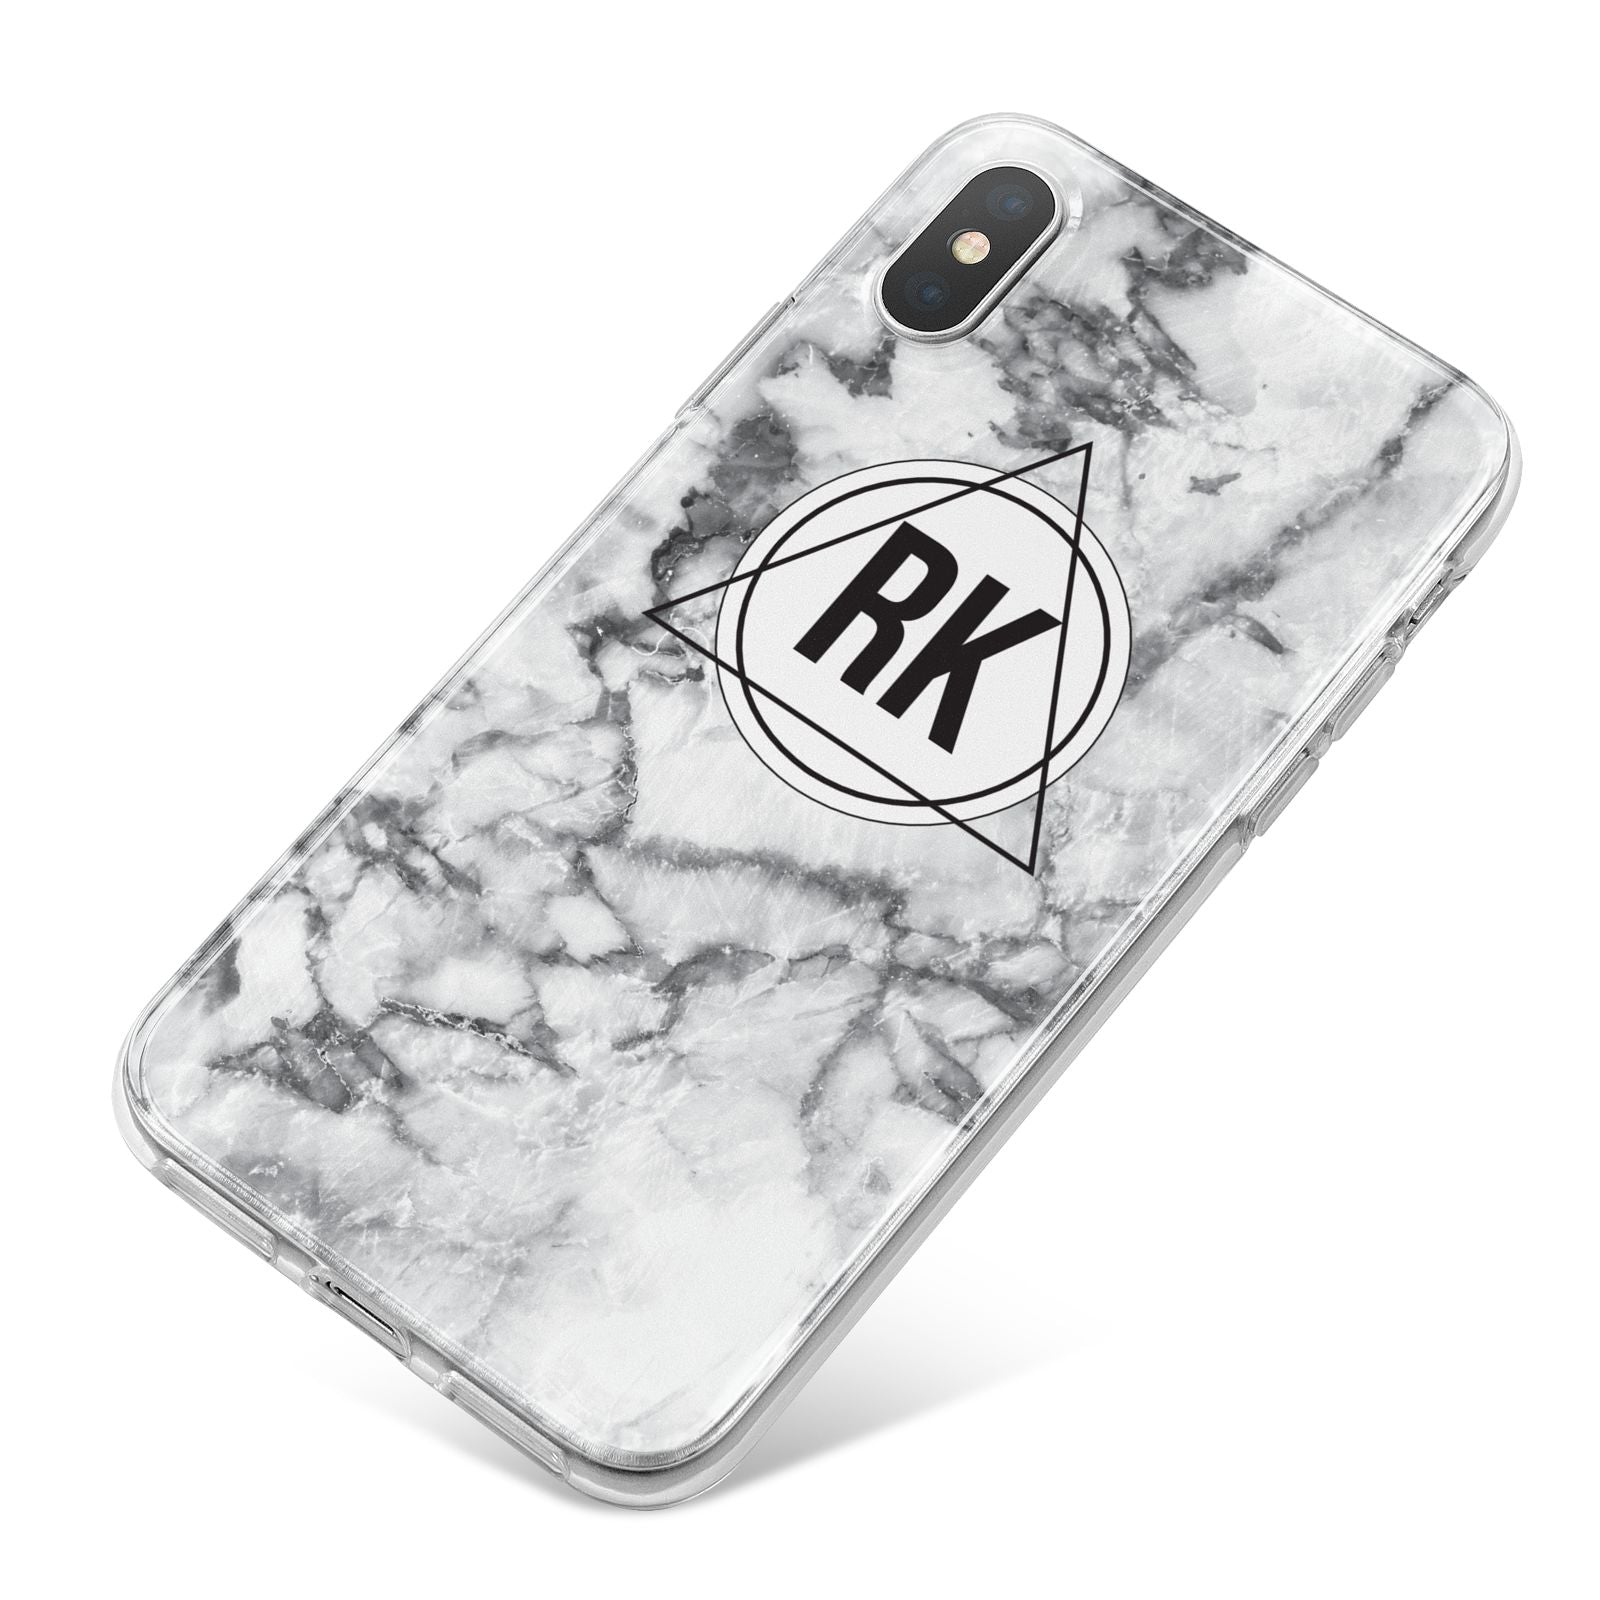 Marble Initials Triangle Personalised iPhone X Bumper Case on Silver iPhone